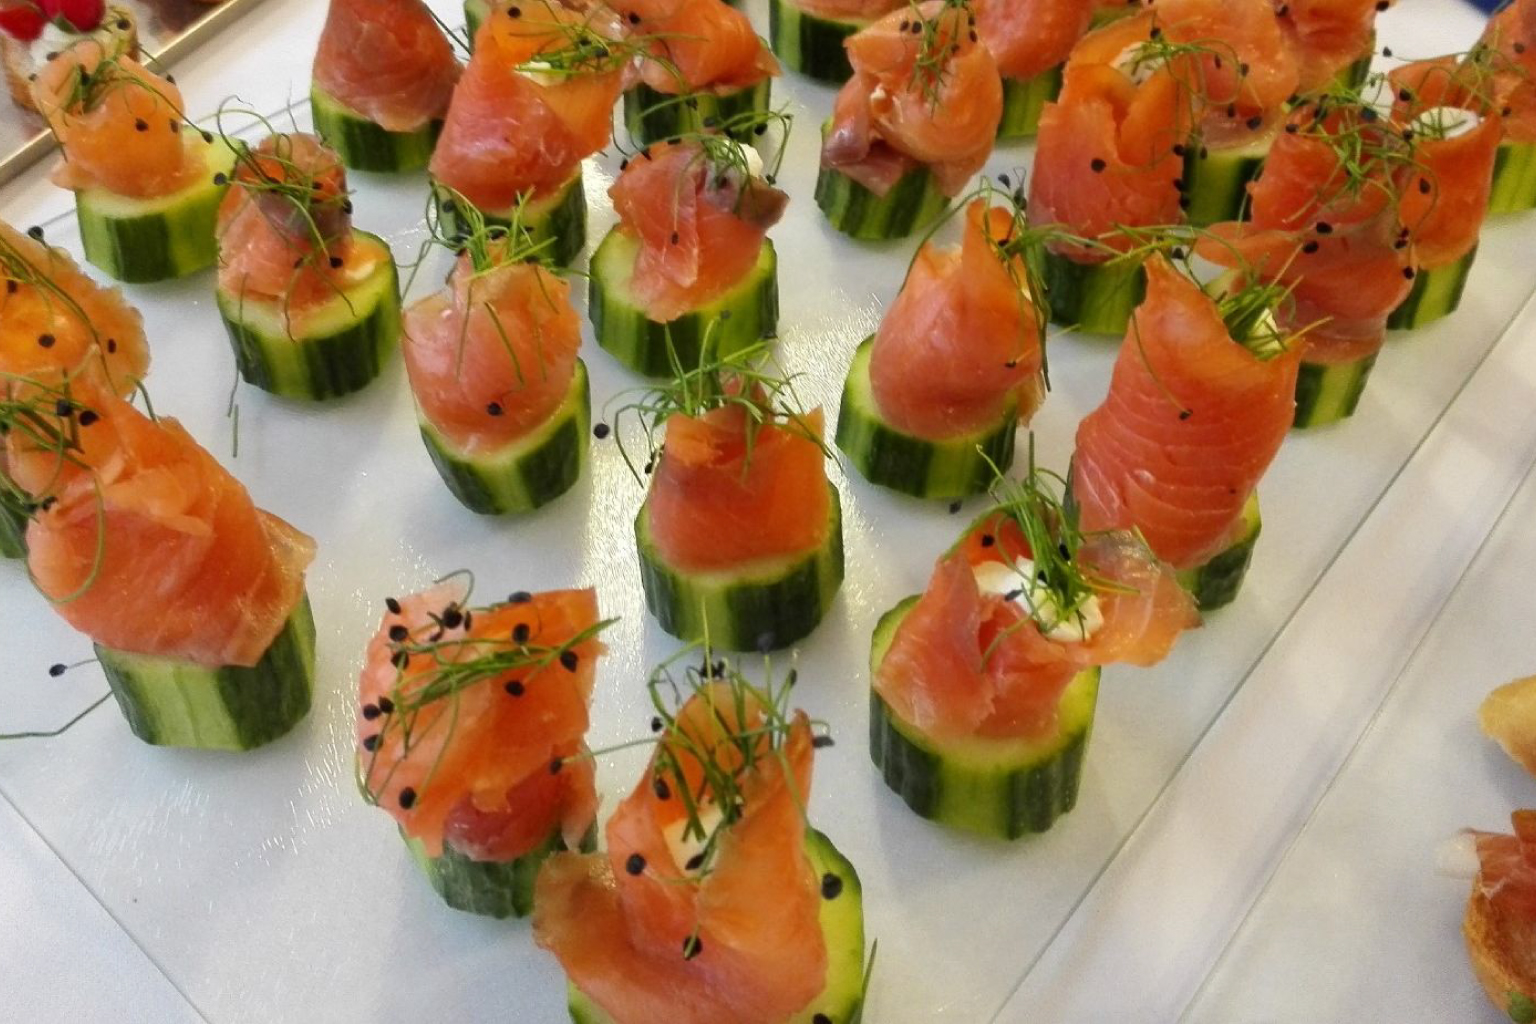 catering, martin, event, pate, restaurant, catering v martine